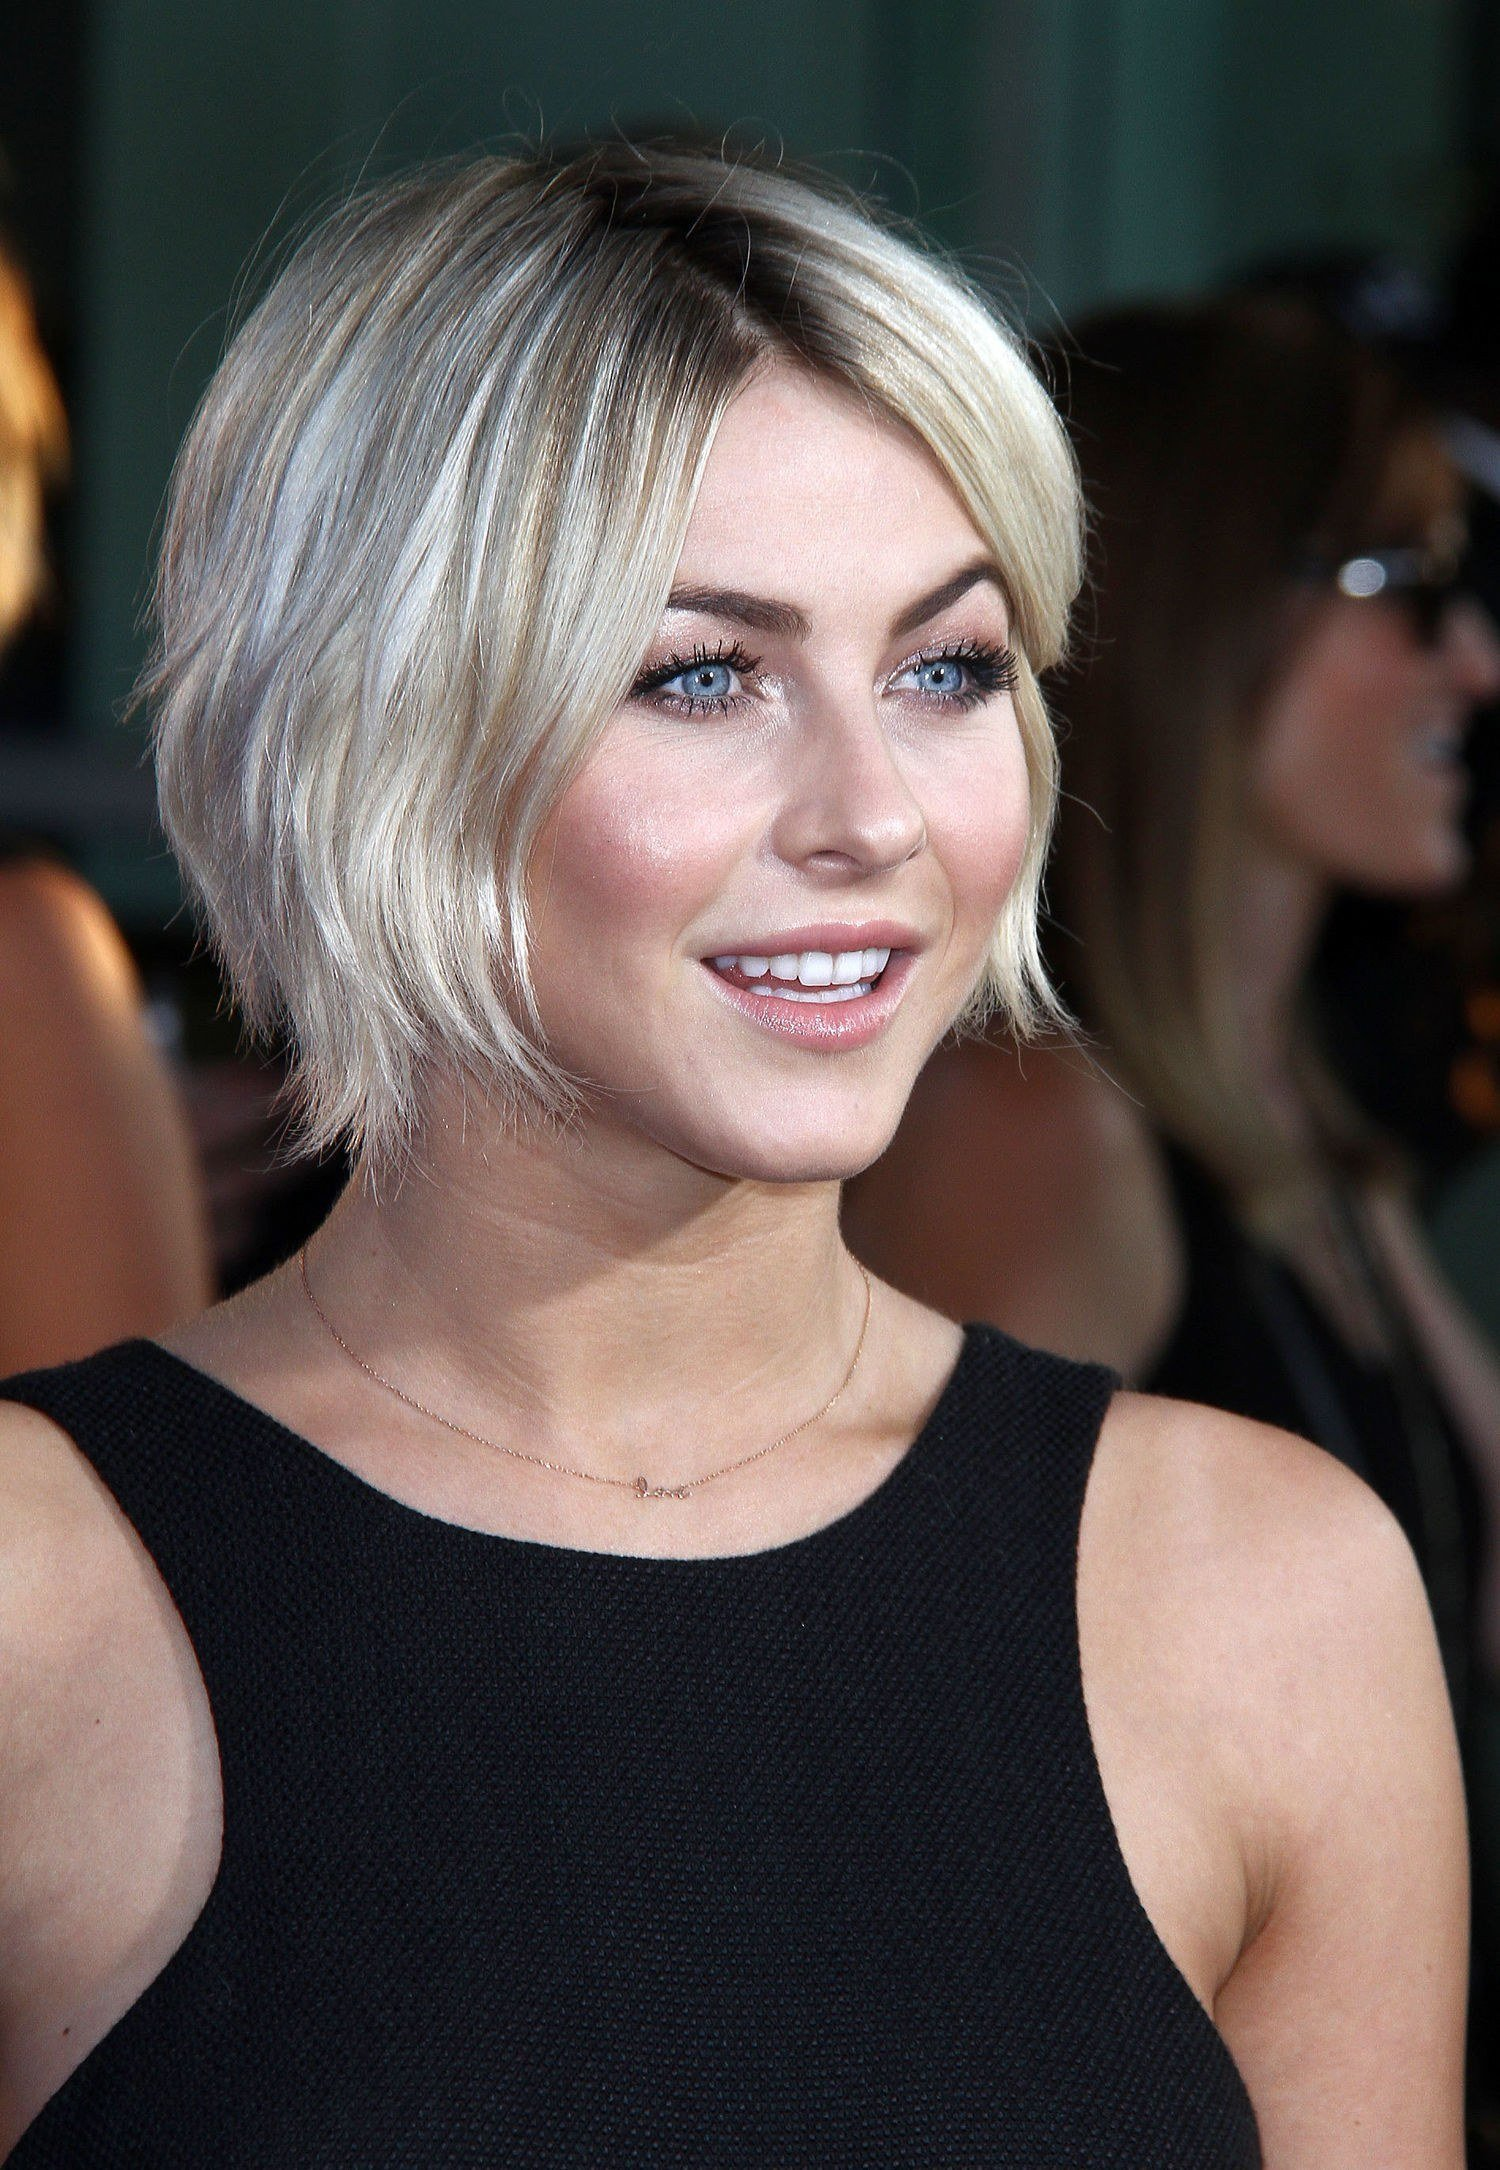 The Best Growing Out Your Short Hair Julianne Hough Has Found The Pictures